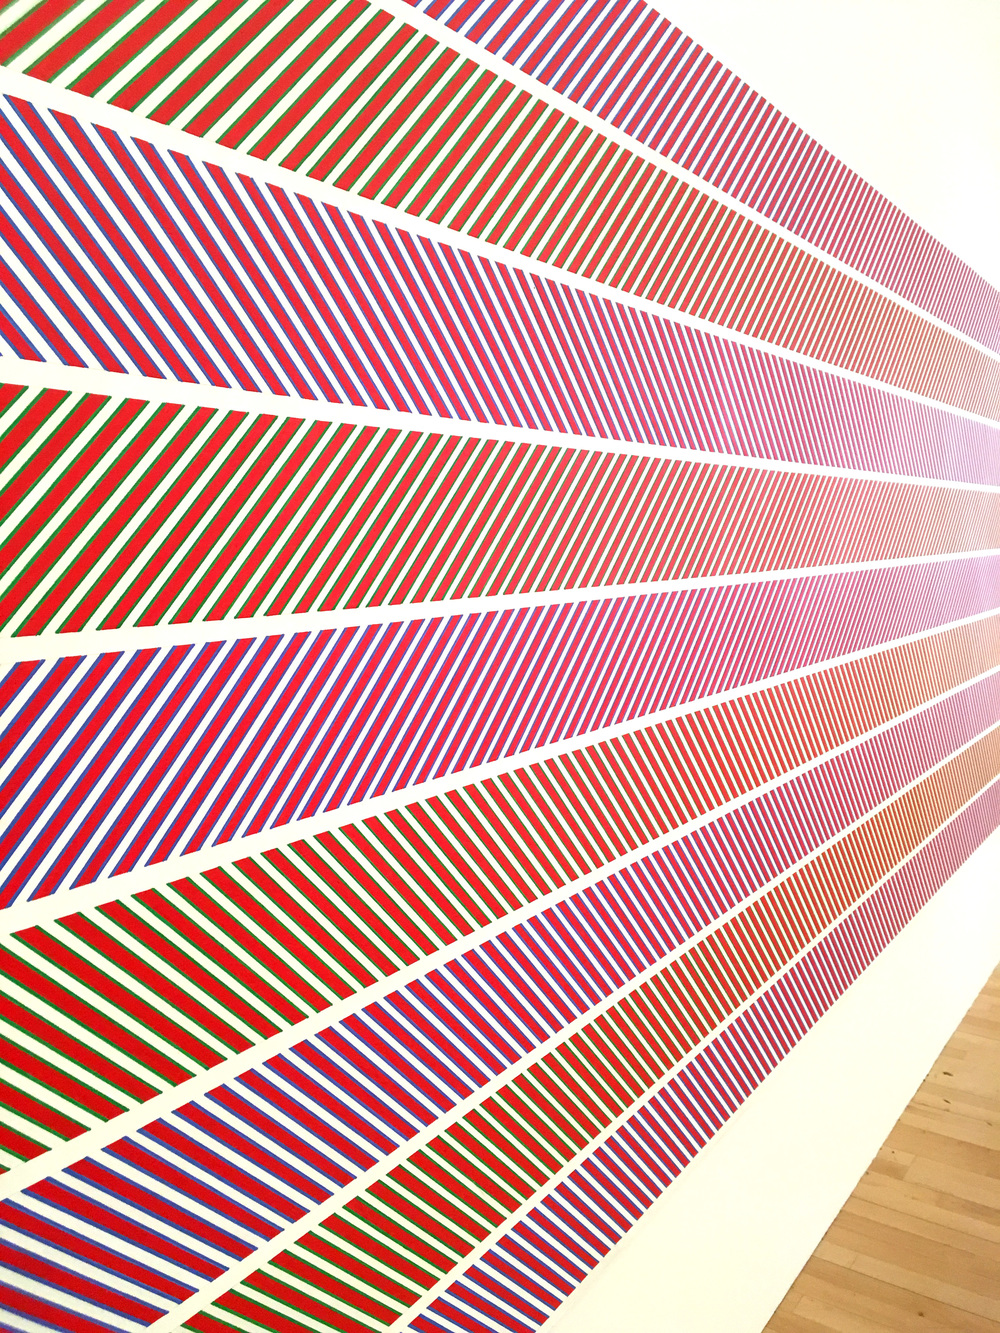 Bridget-Riley06.jpg